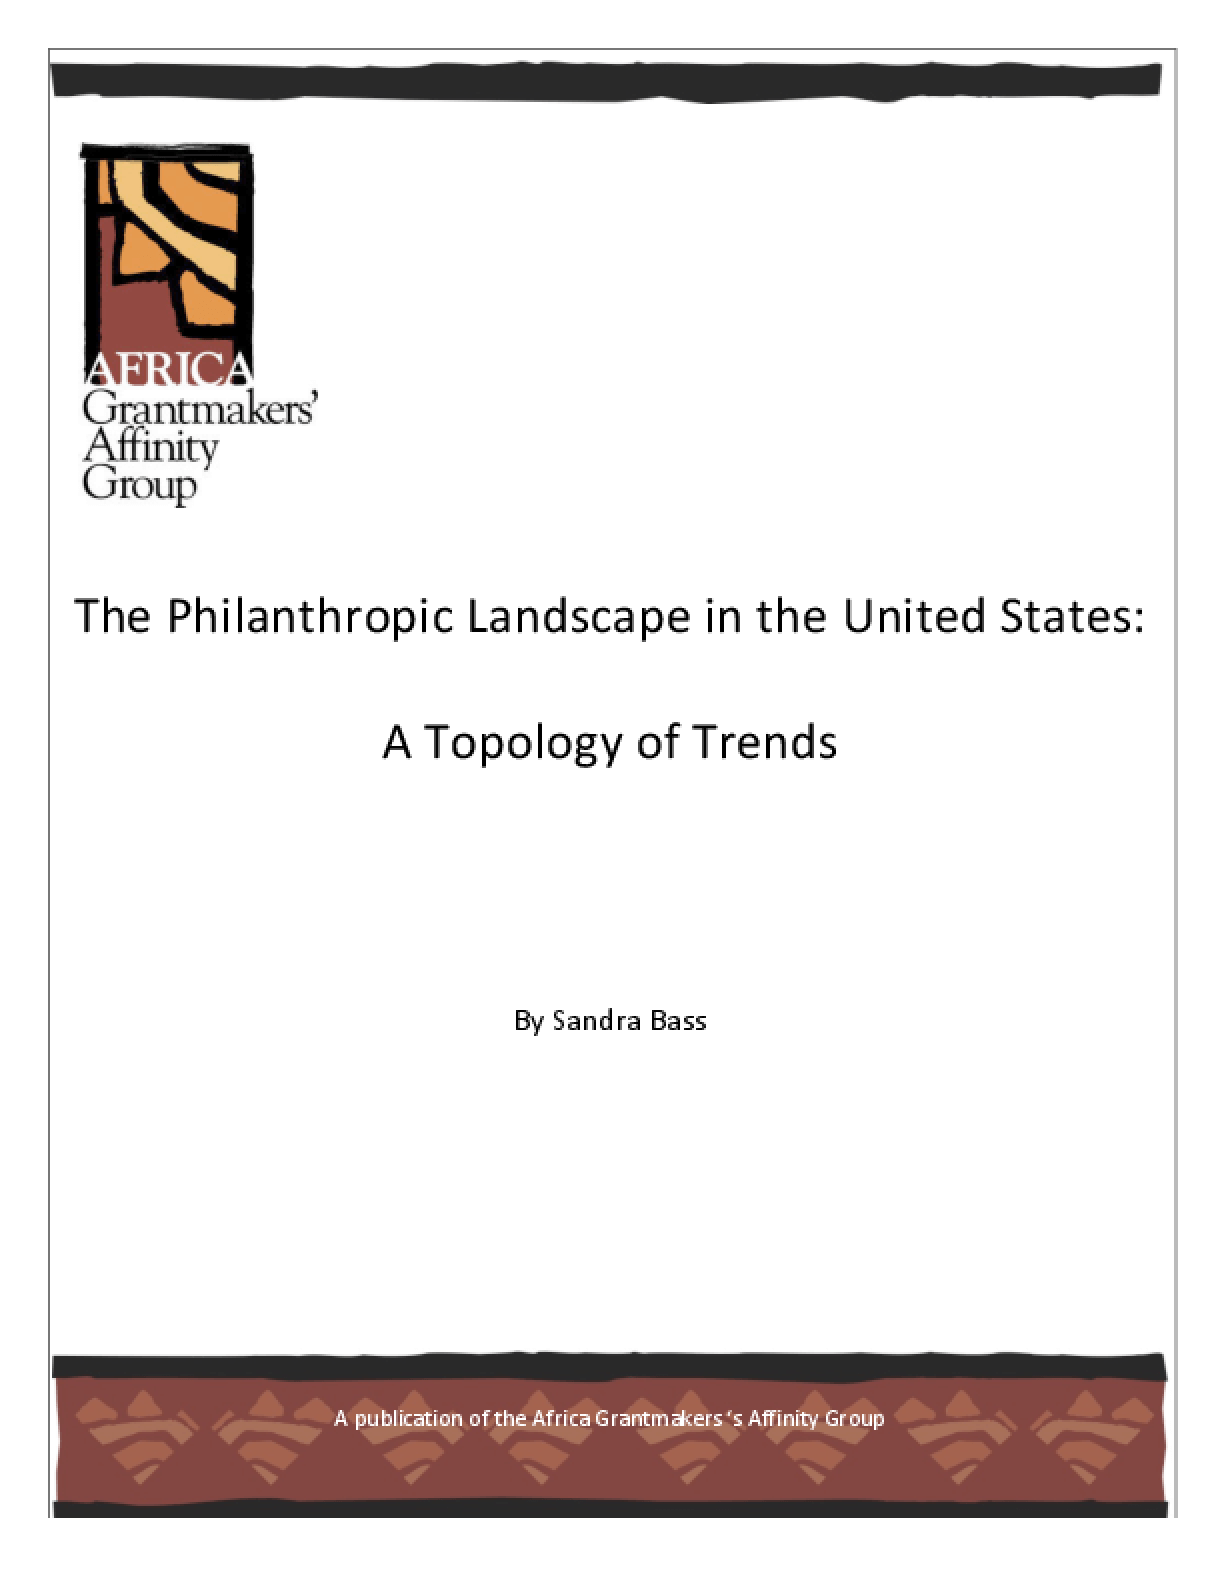 The Philanthropic Landscape in the United States: A Topology of Trends